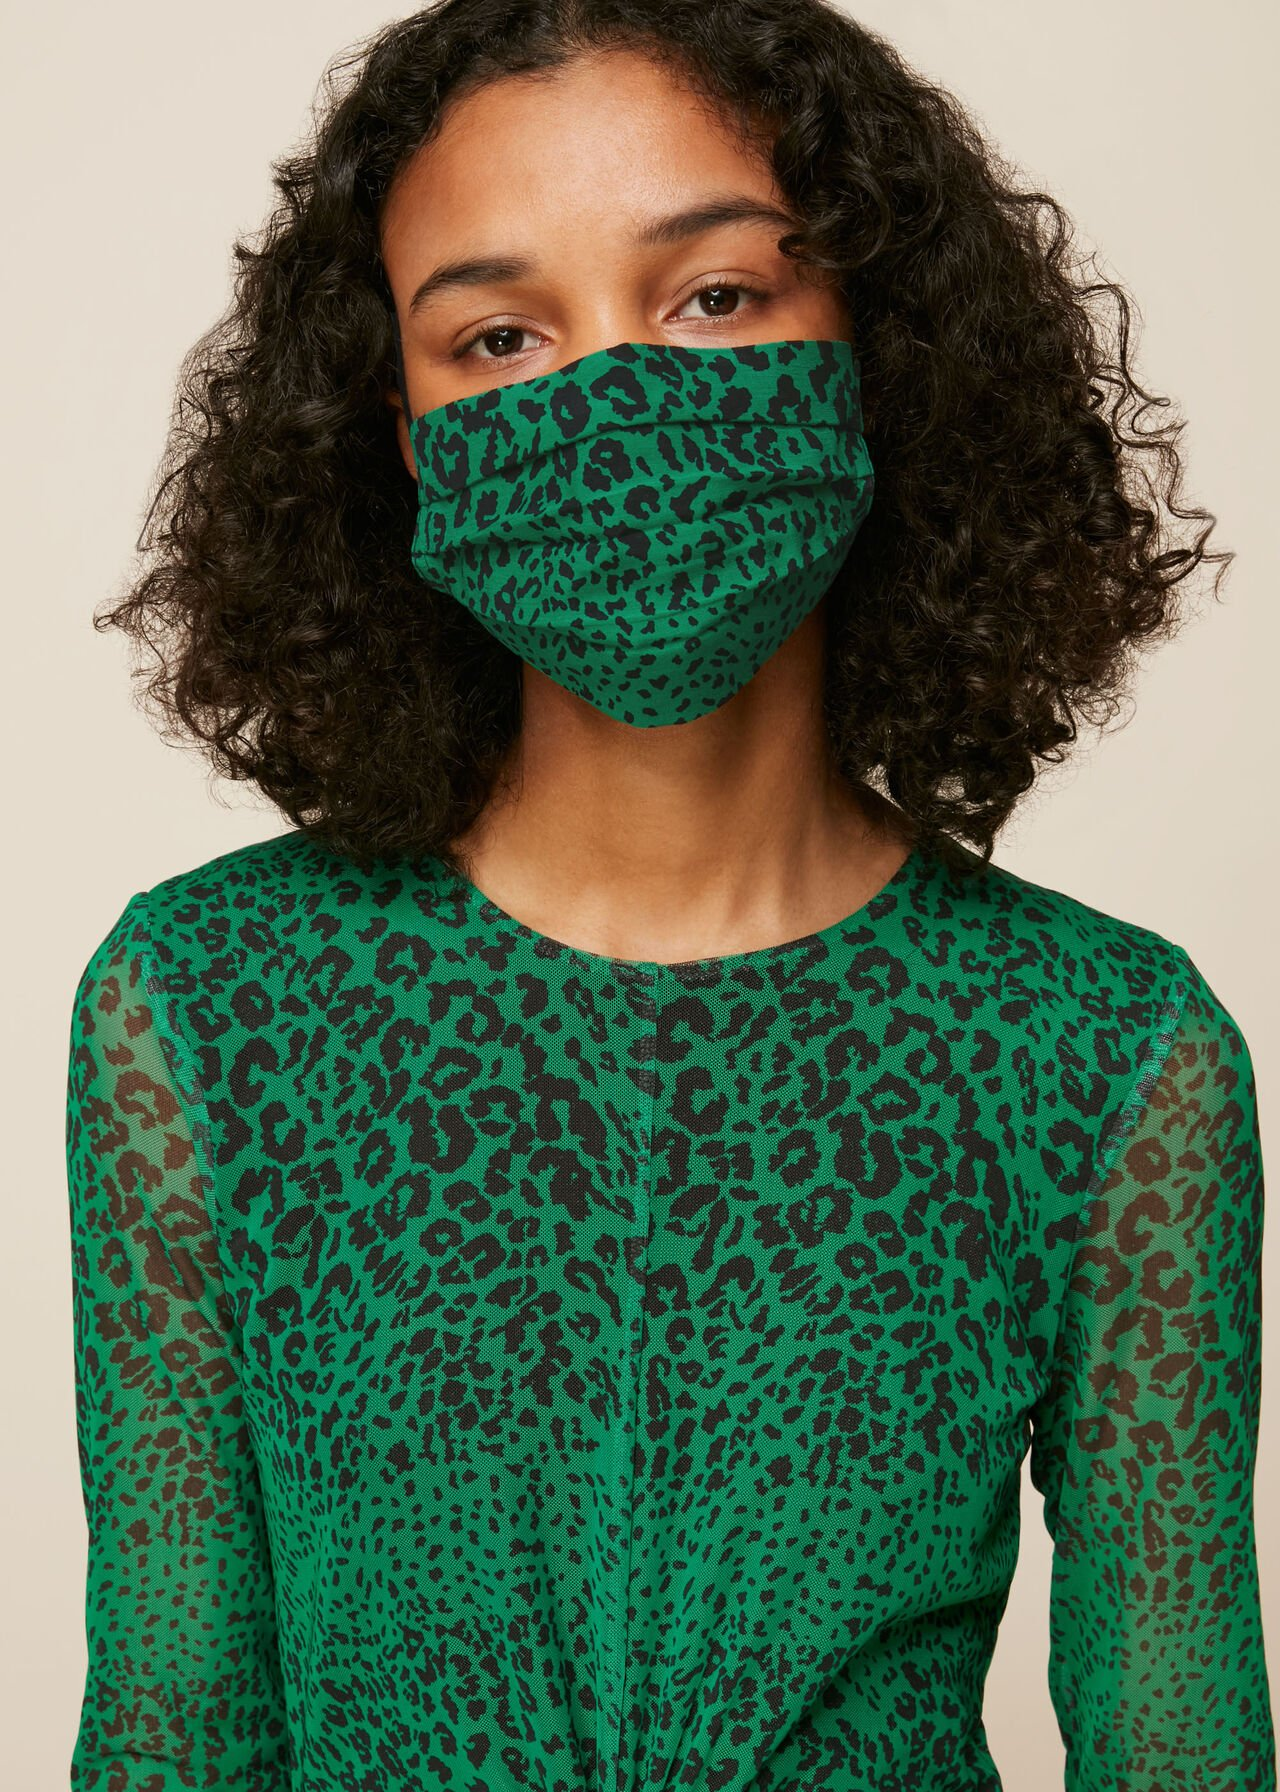 Speckled Animal Face Covering